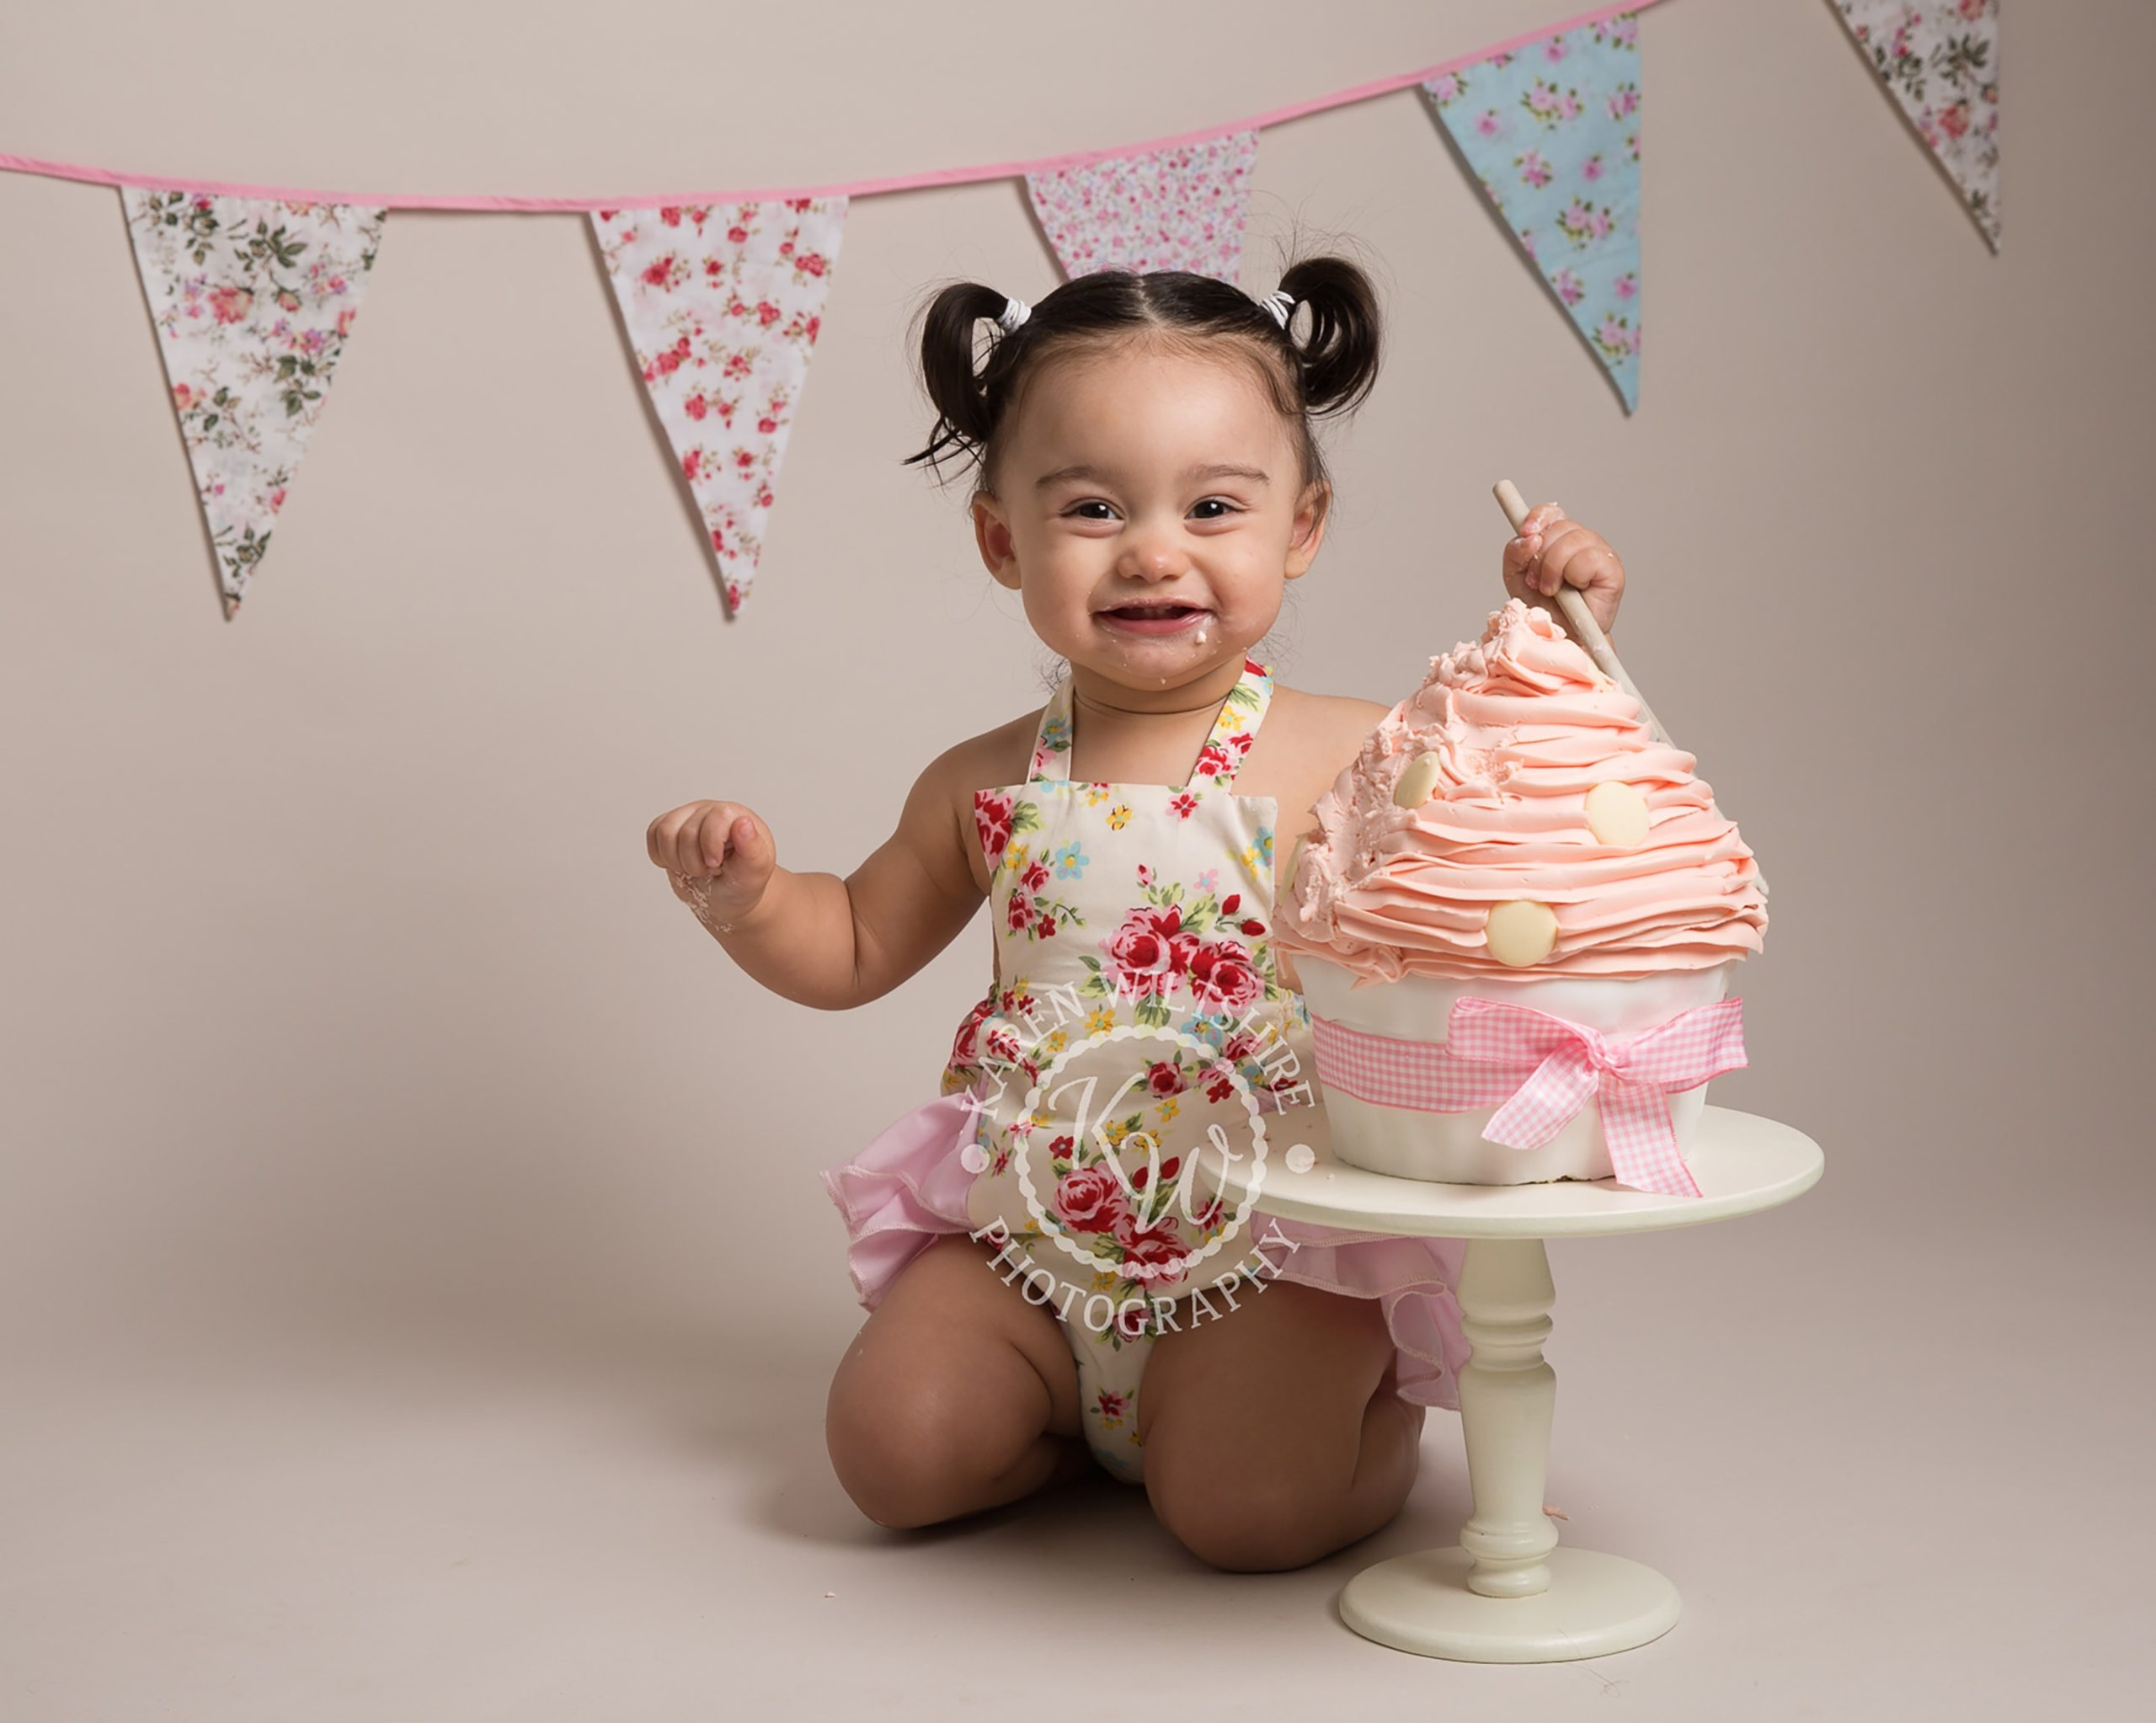 baby girl with pigtail bunches eating large cake